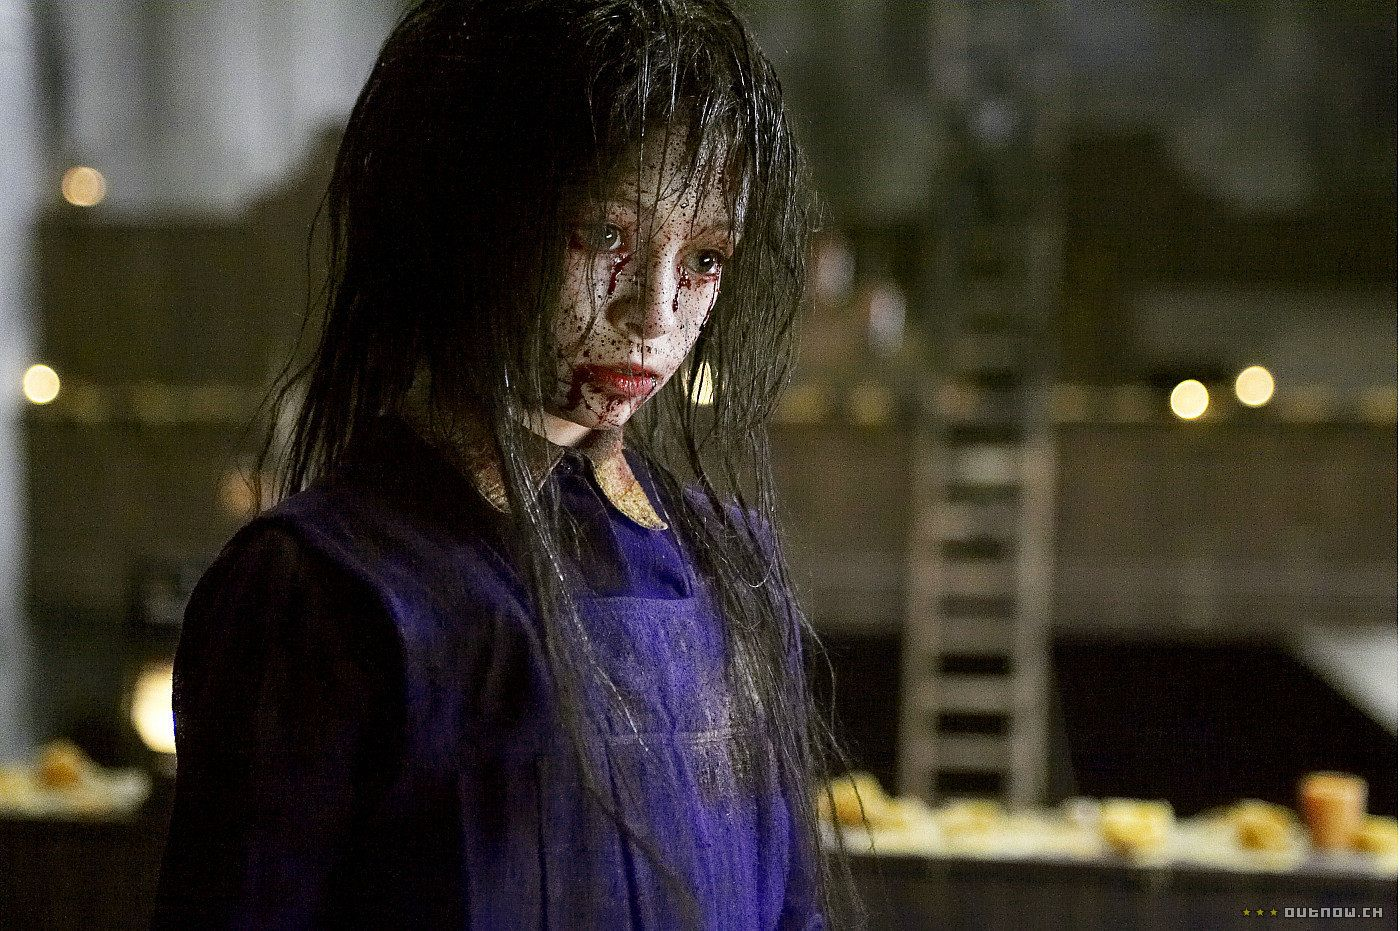 Alessa Gillespie (Jodelle Ferland), Terror em Silent Hill | Movie | Pinterest | Silent hill and ...